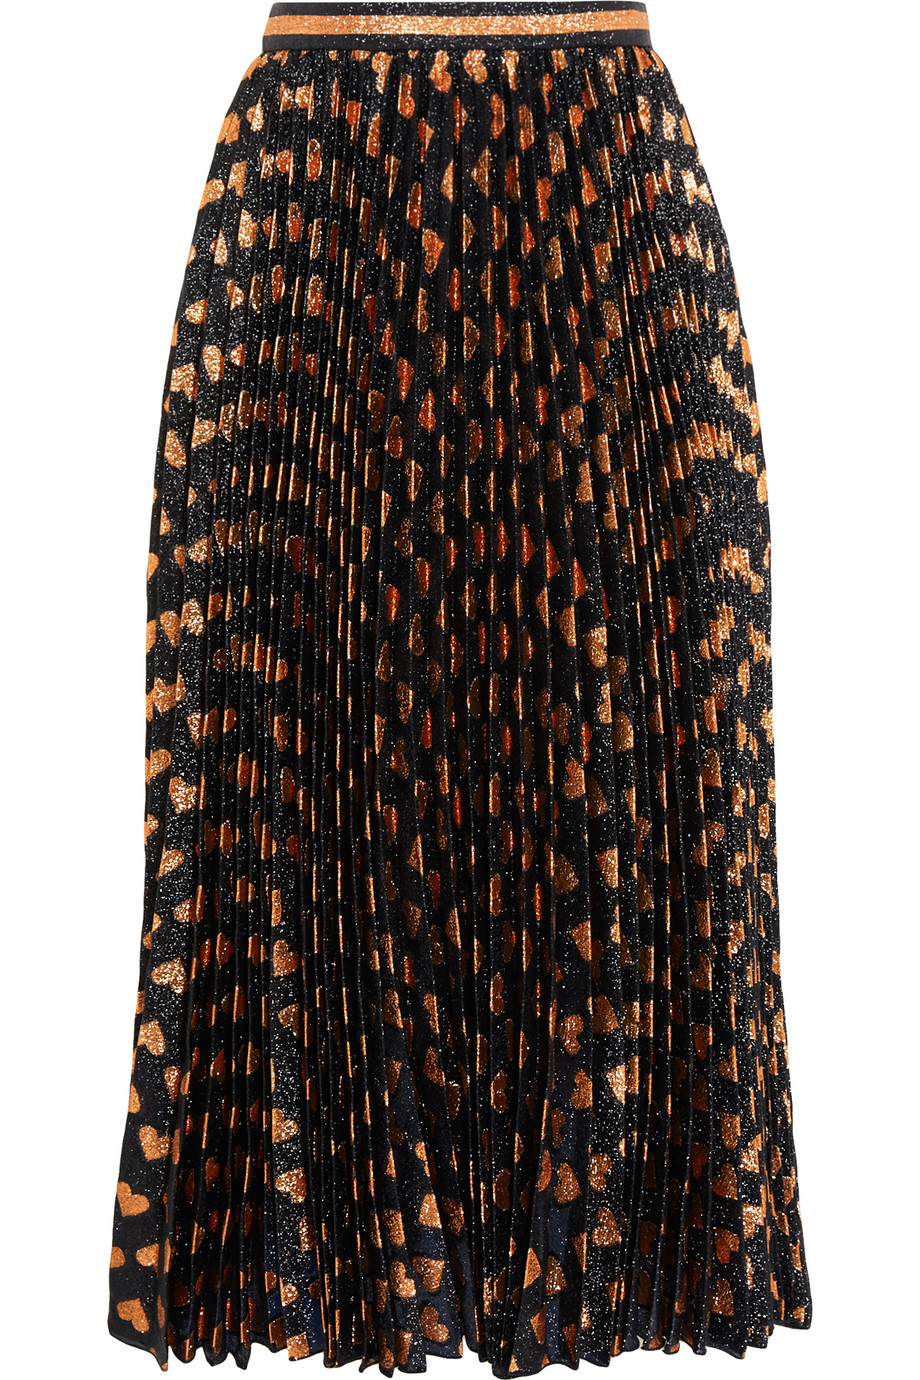 Gucci Pleated Printed Lamé Skirt, Size: 36